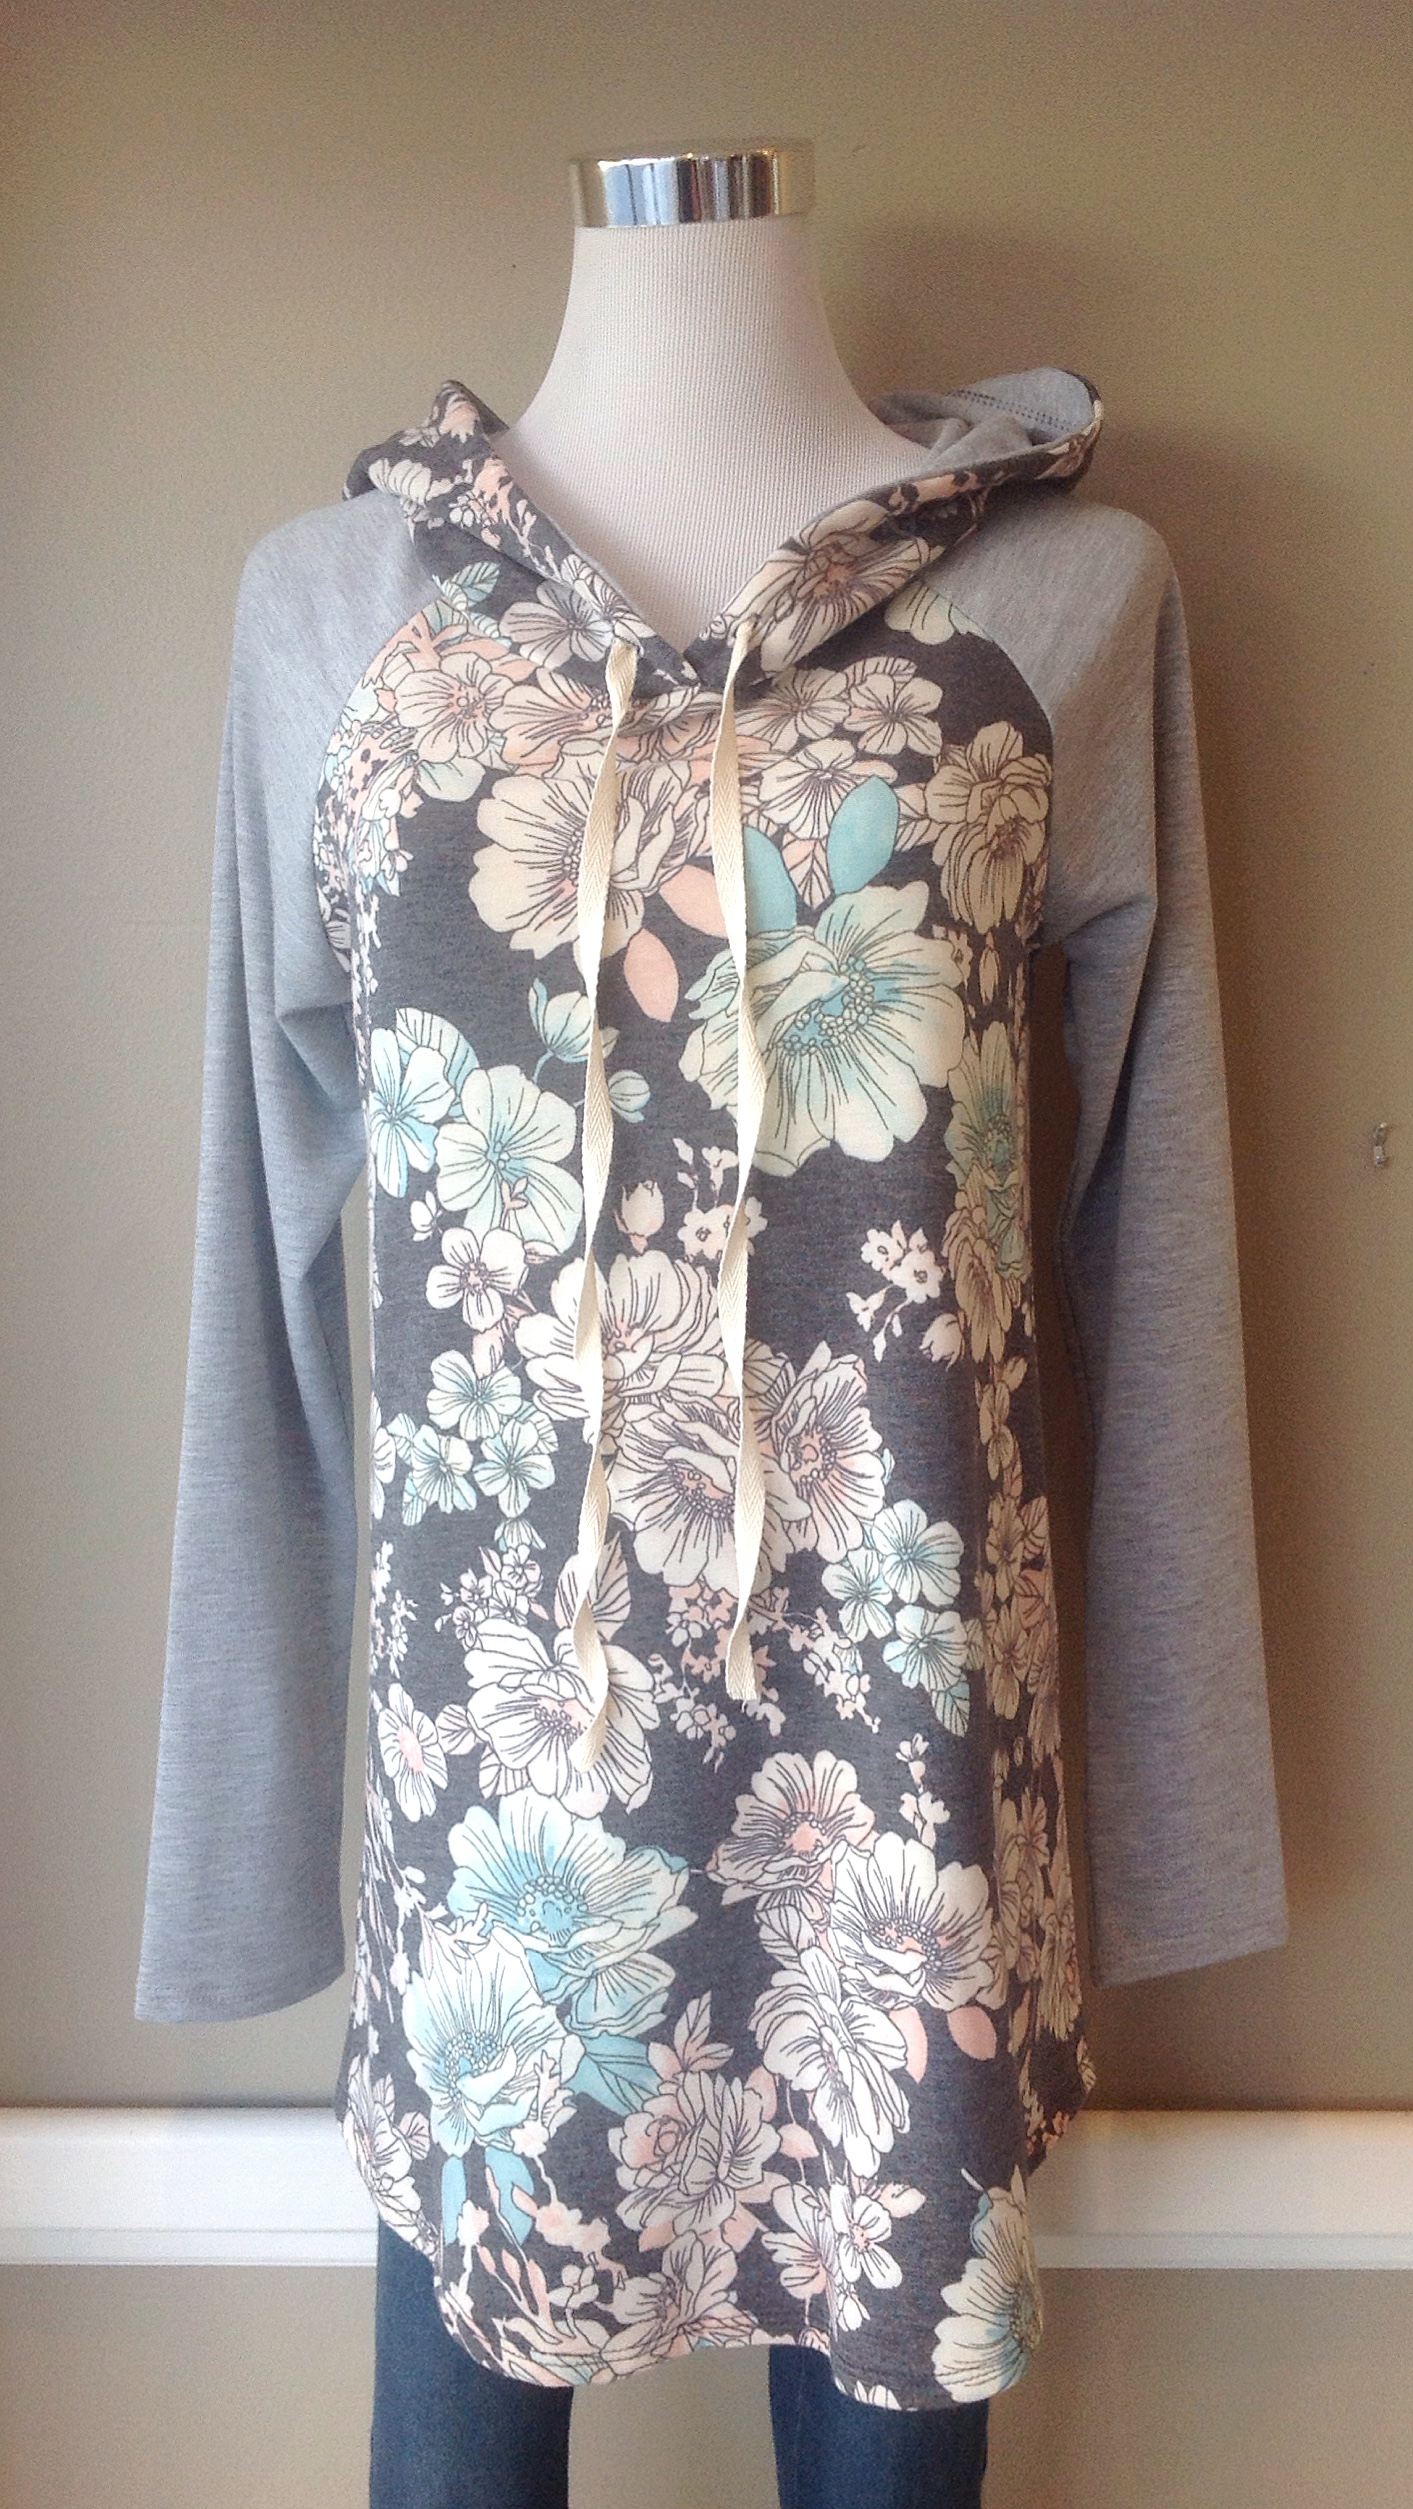 Floral print pullover hoodie in multi/heather grey, $38